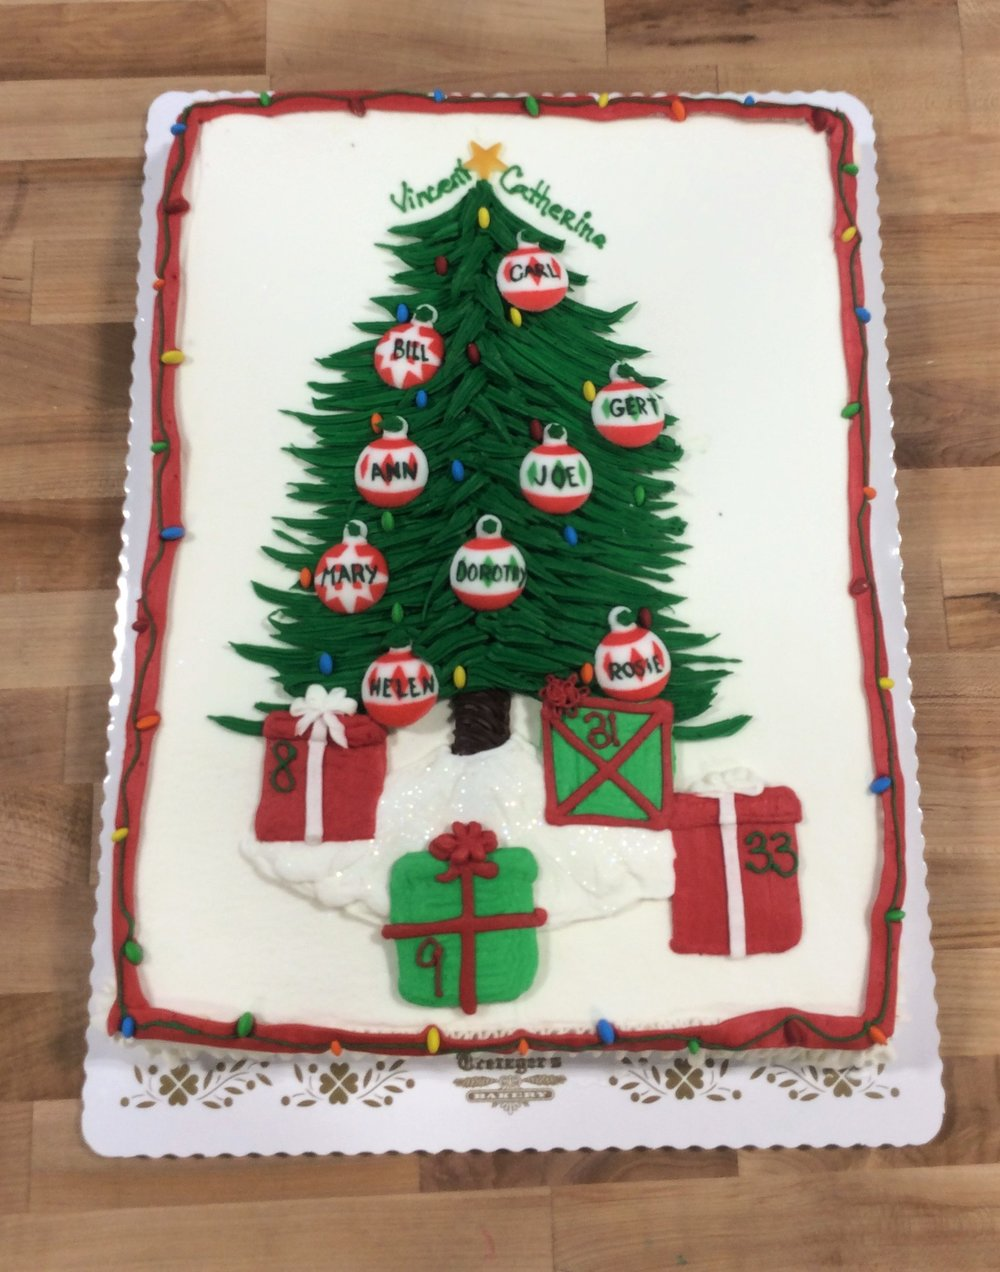 Christmas Tree Sheet Cake with Custom Ornaments